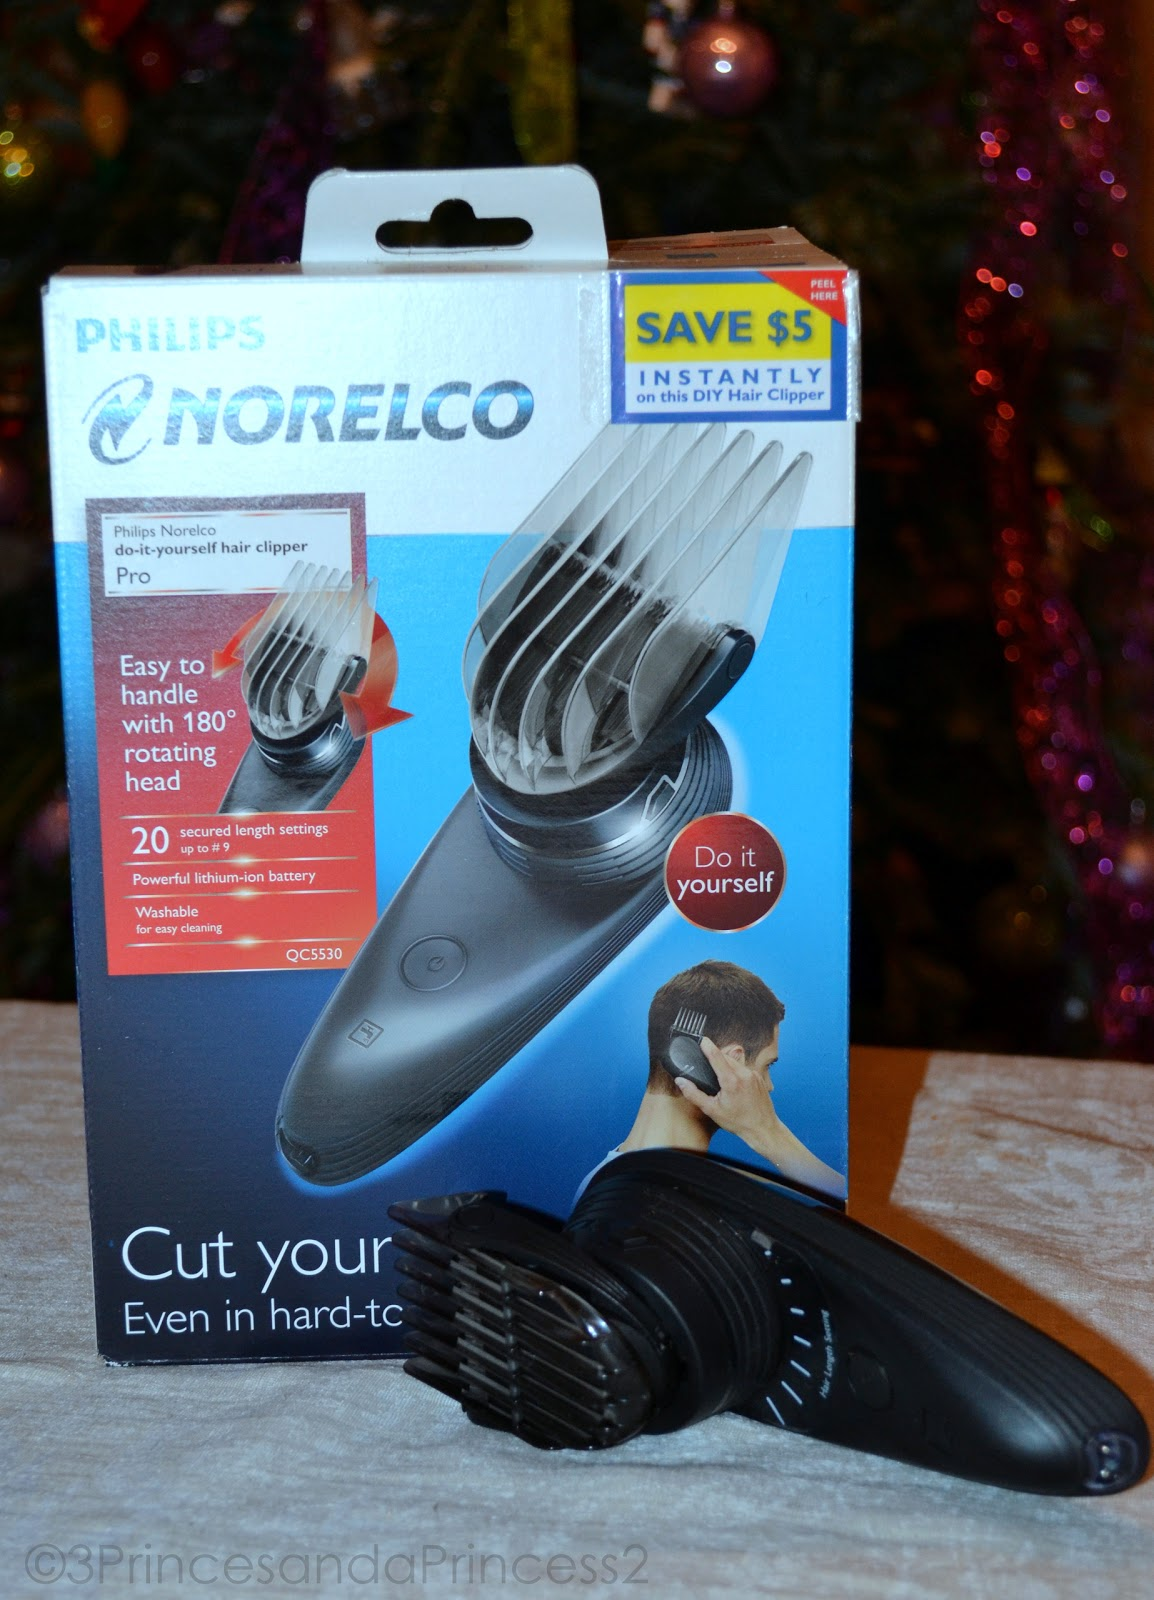 3 princes and a princess 2 do it yourself with philips norelco do it yourself hair clippers solutioingenieria Choice Image